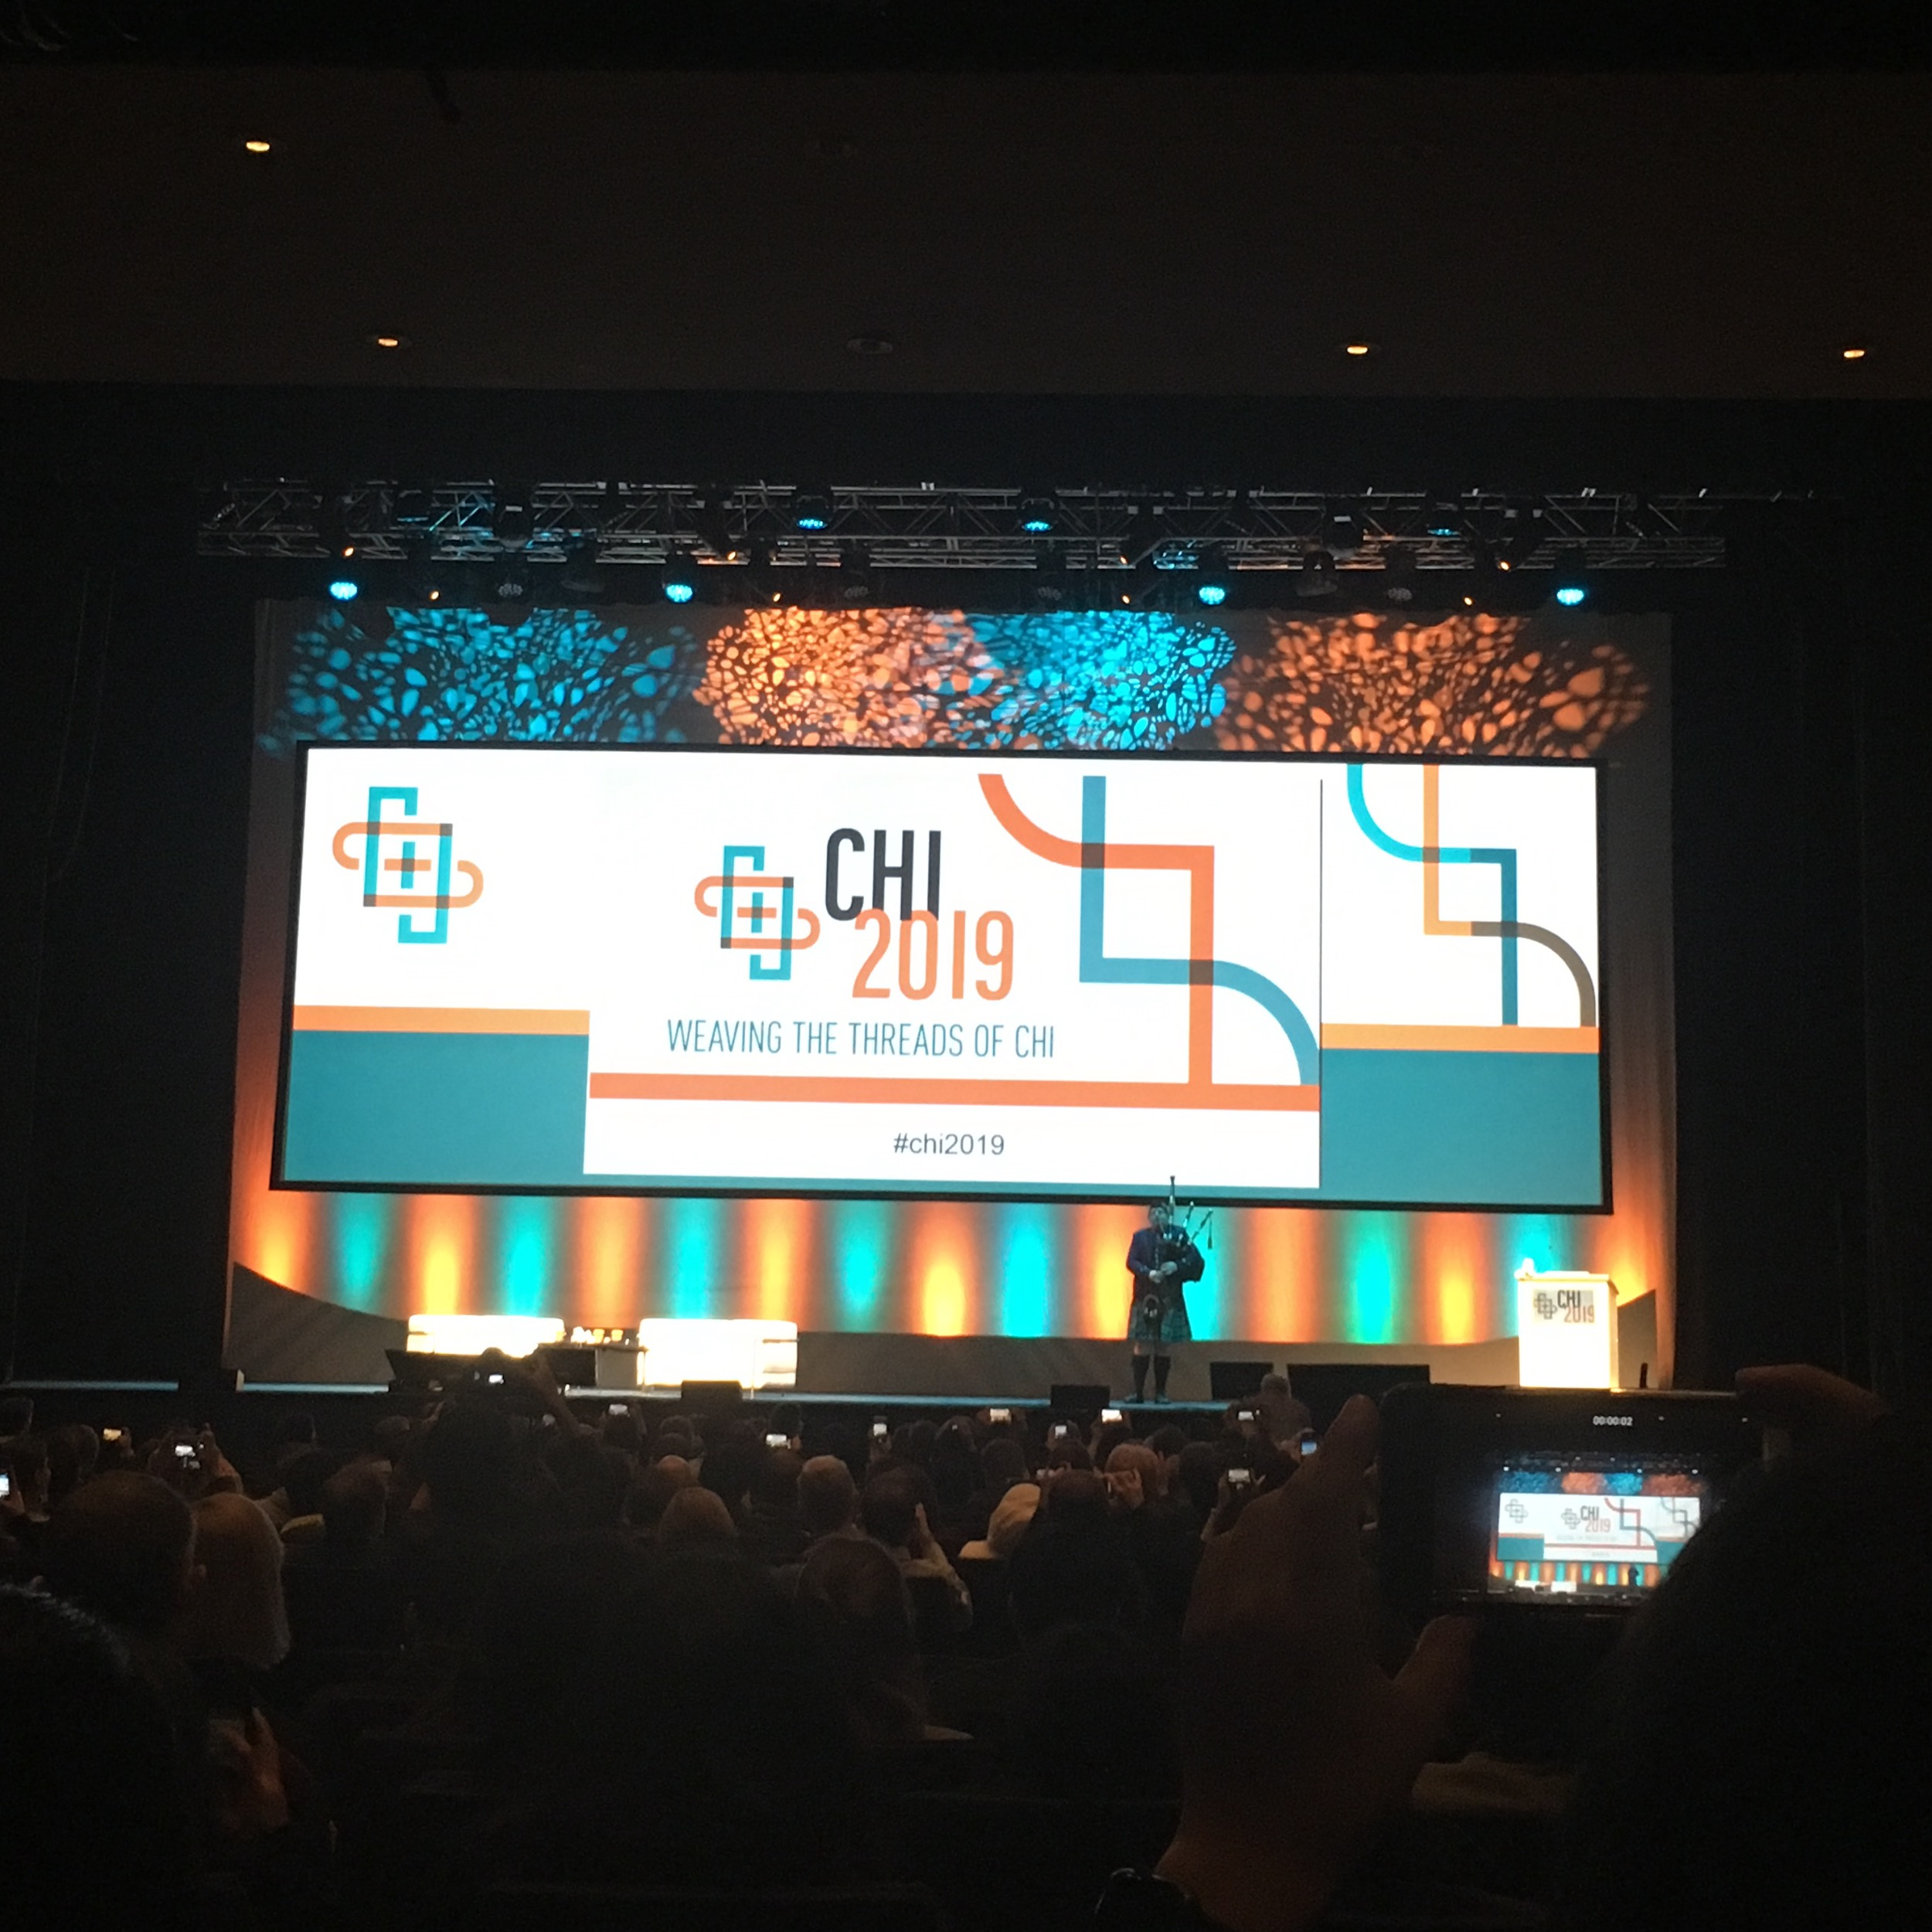 CHI 2019 Conference In Glasgow, Scotland